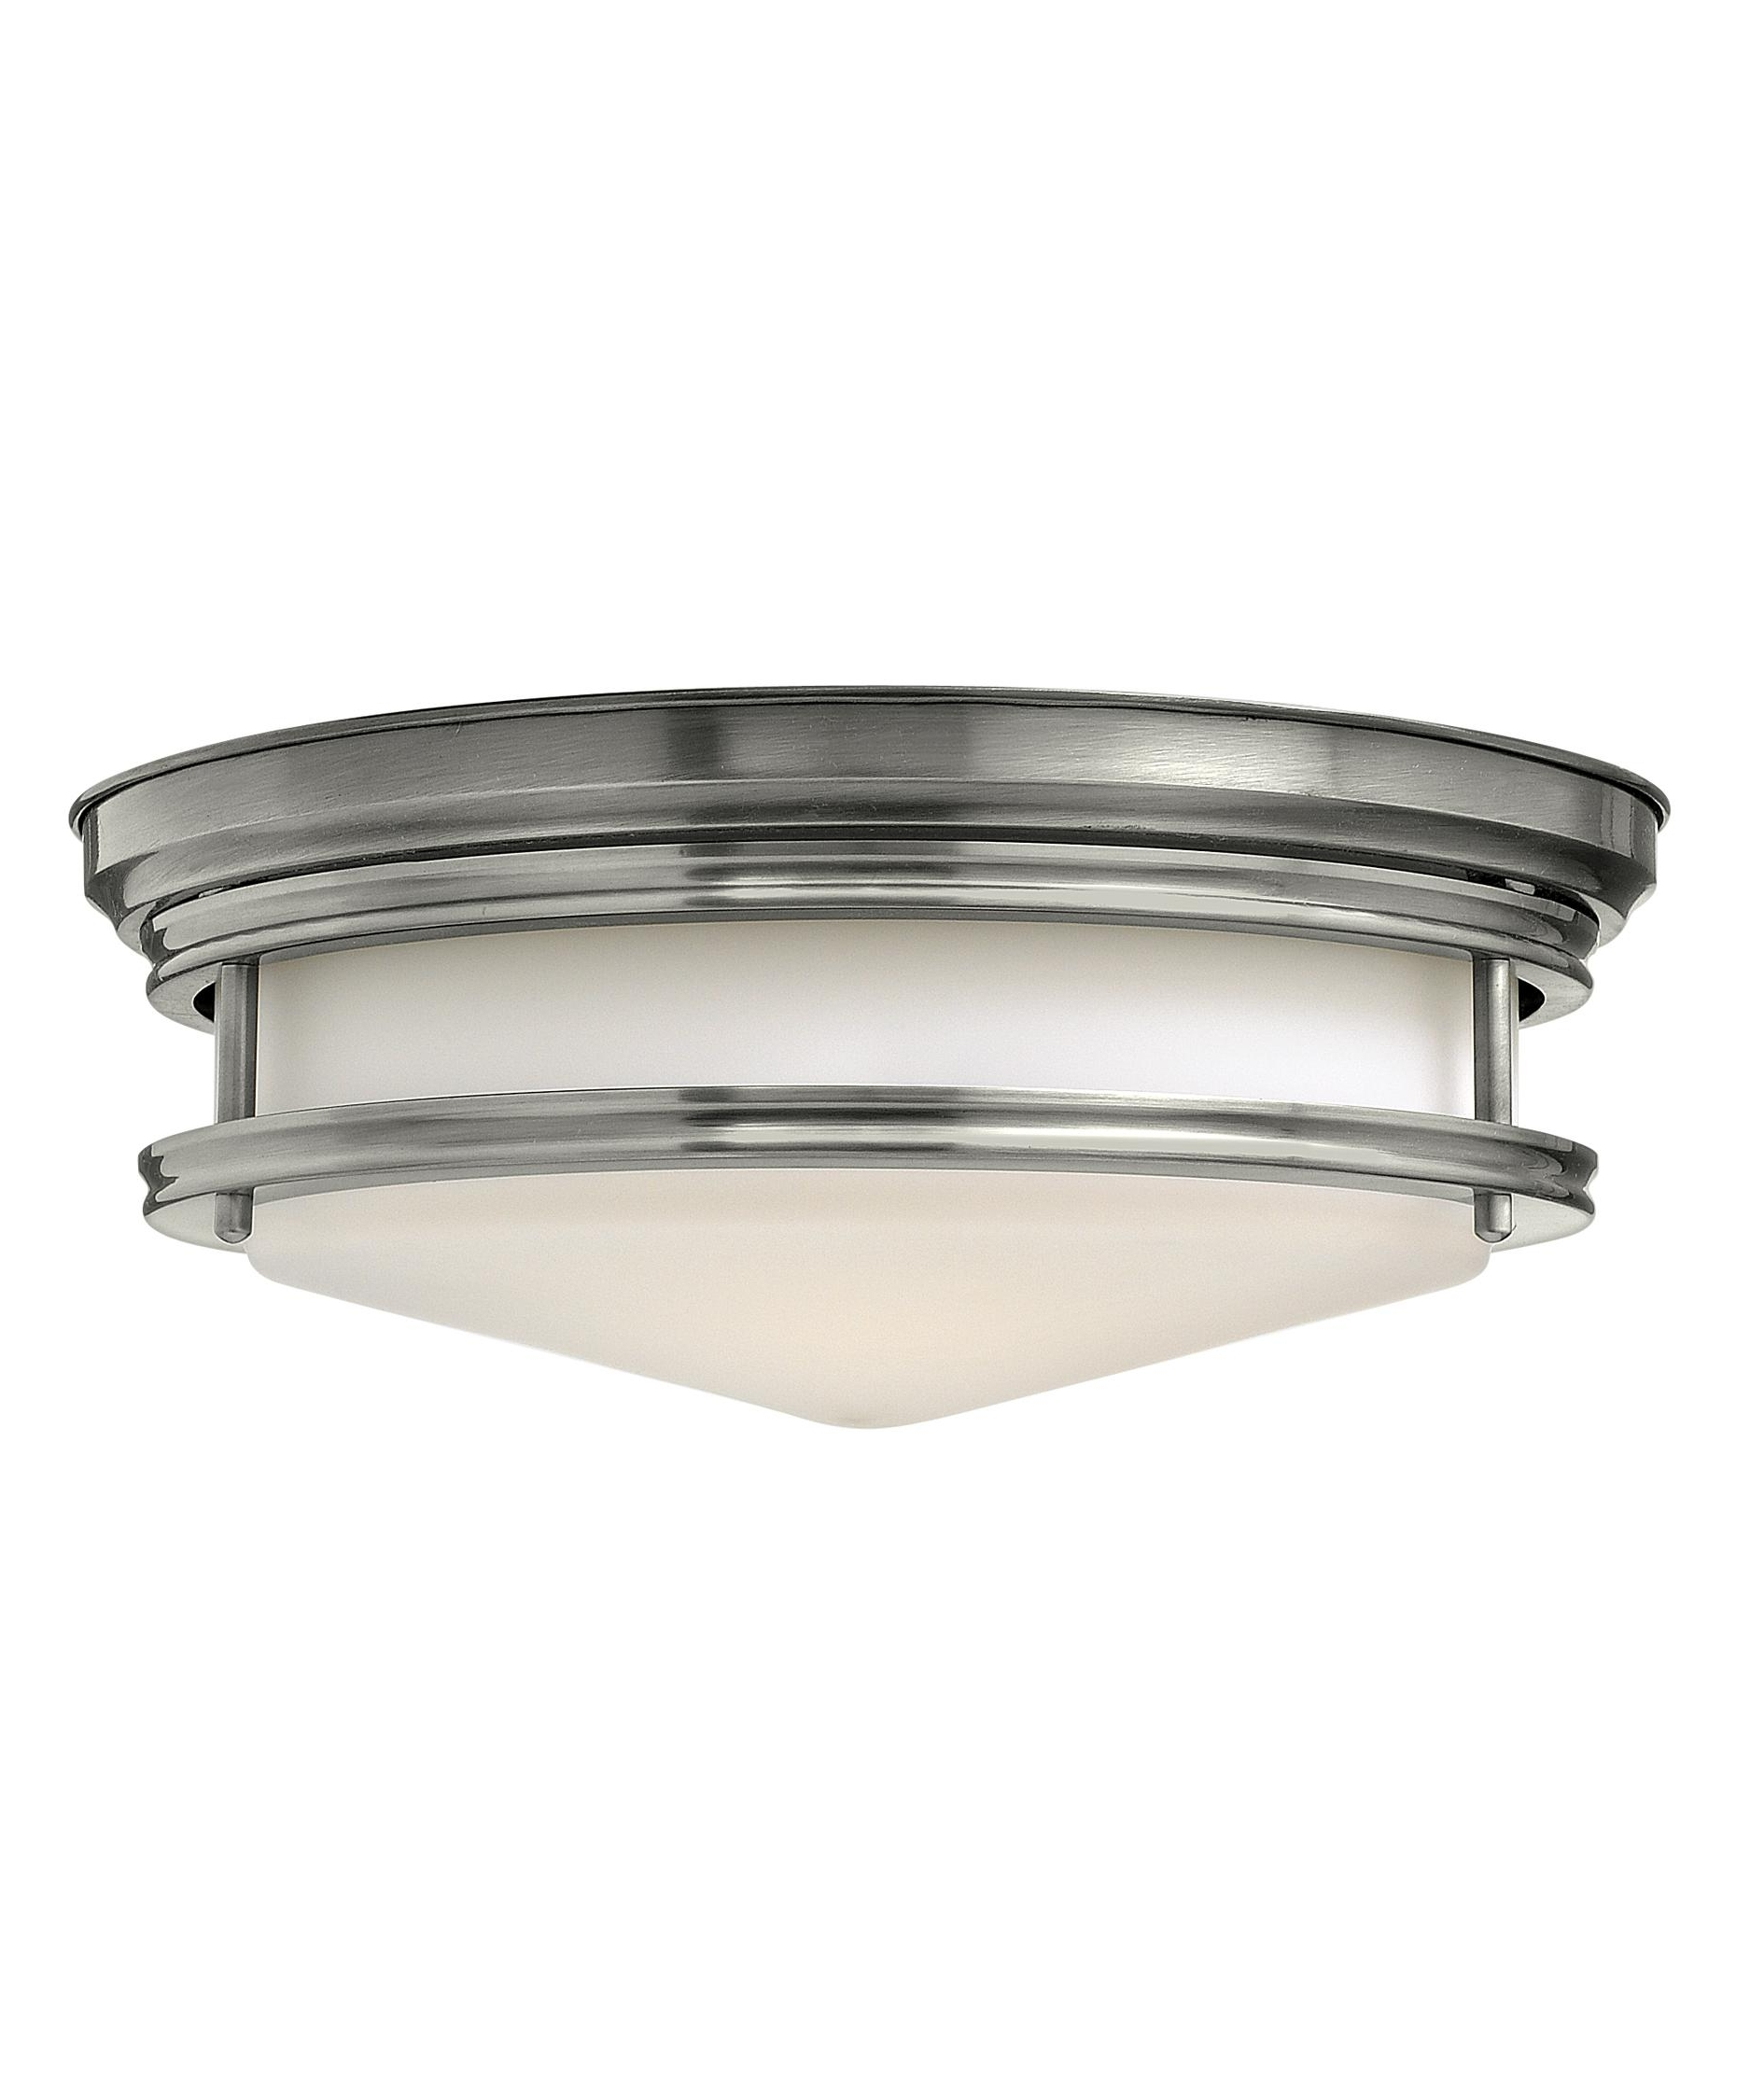 Popular Hinkley Lighting 3301 Hadley 14 Inch Wide Flush Mount (View 10 of 20)